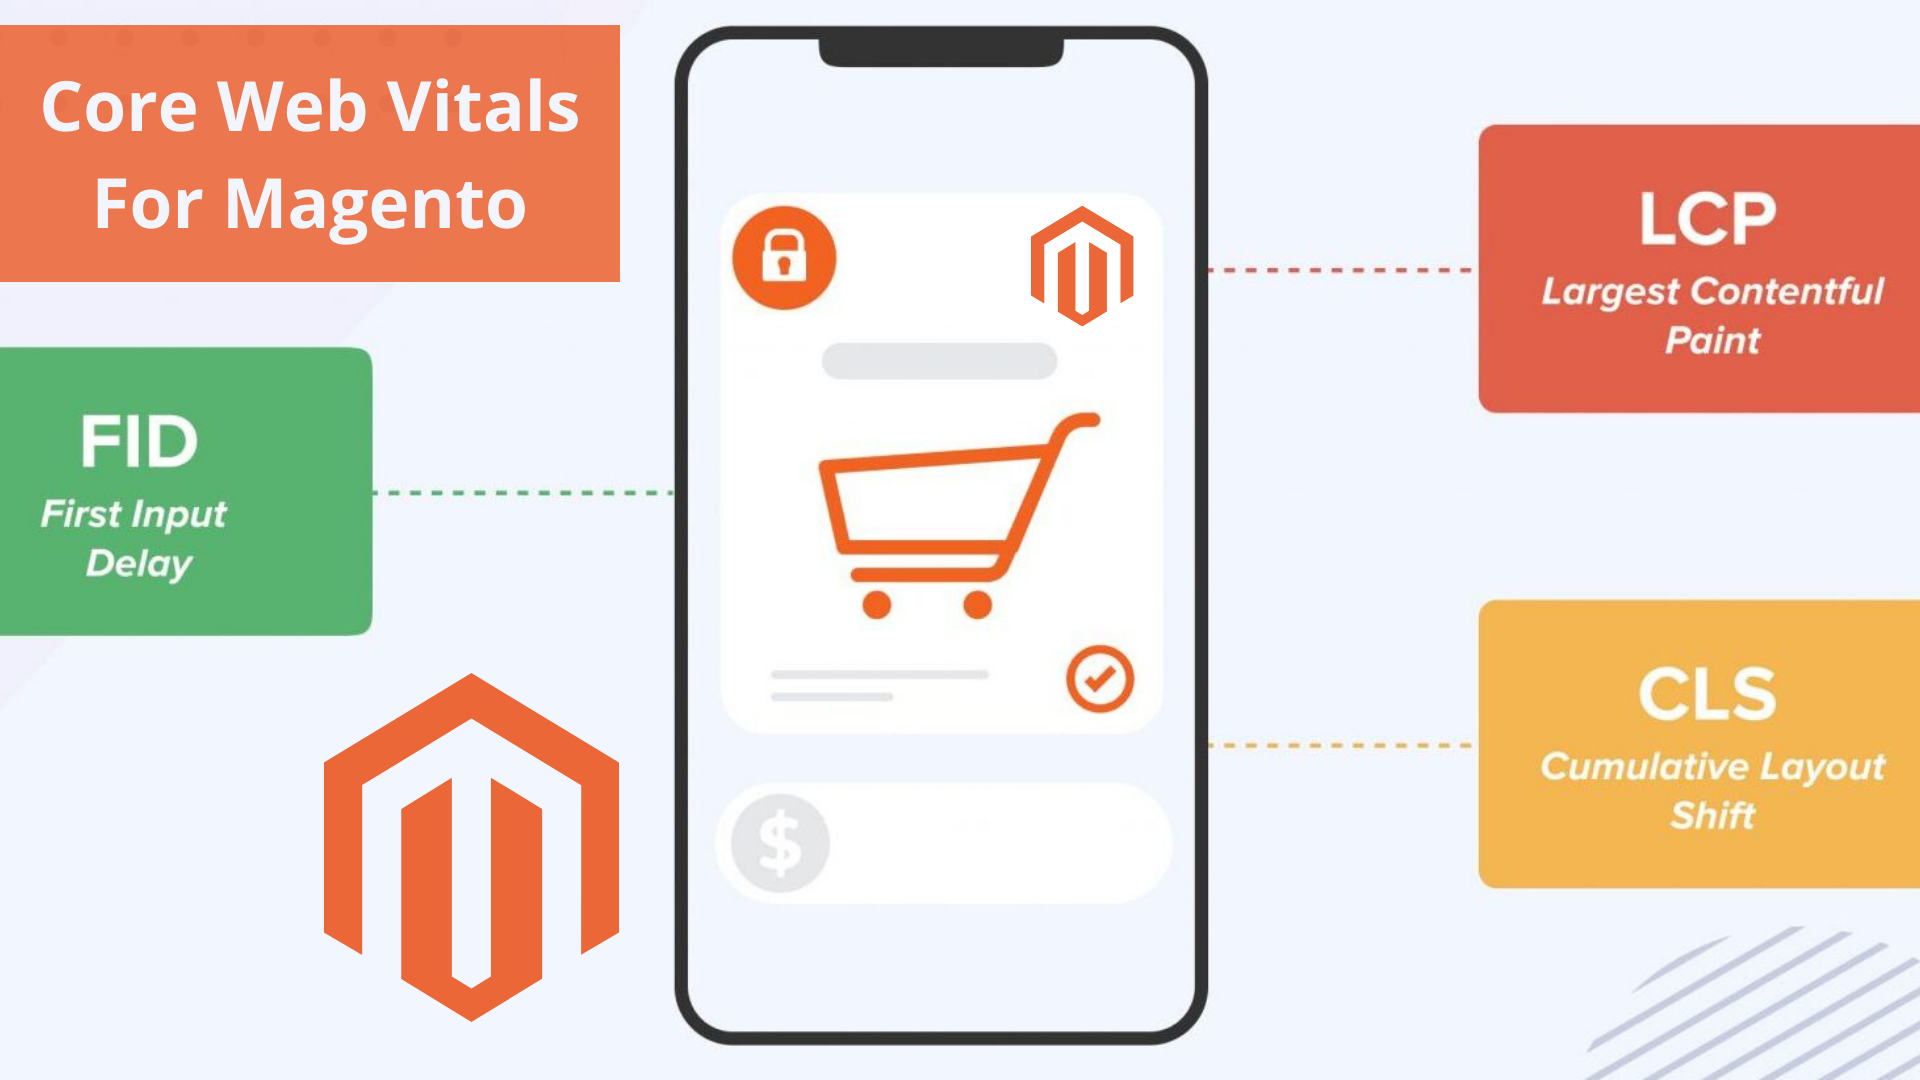 How to Improve Your Magento Store Score on Core Web Vitals